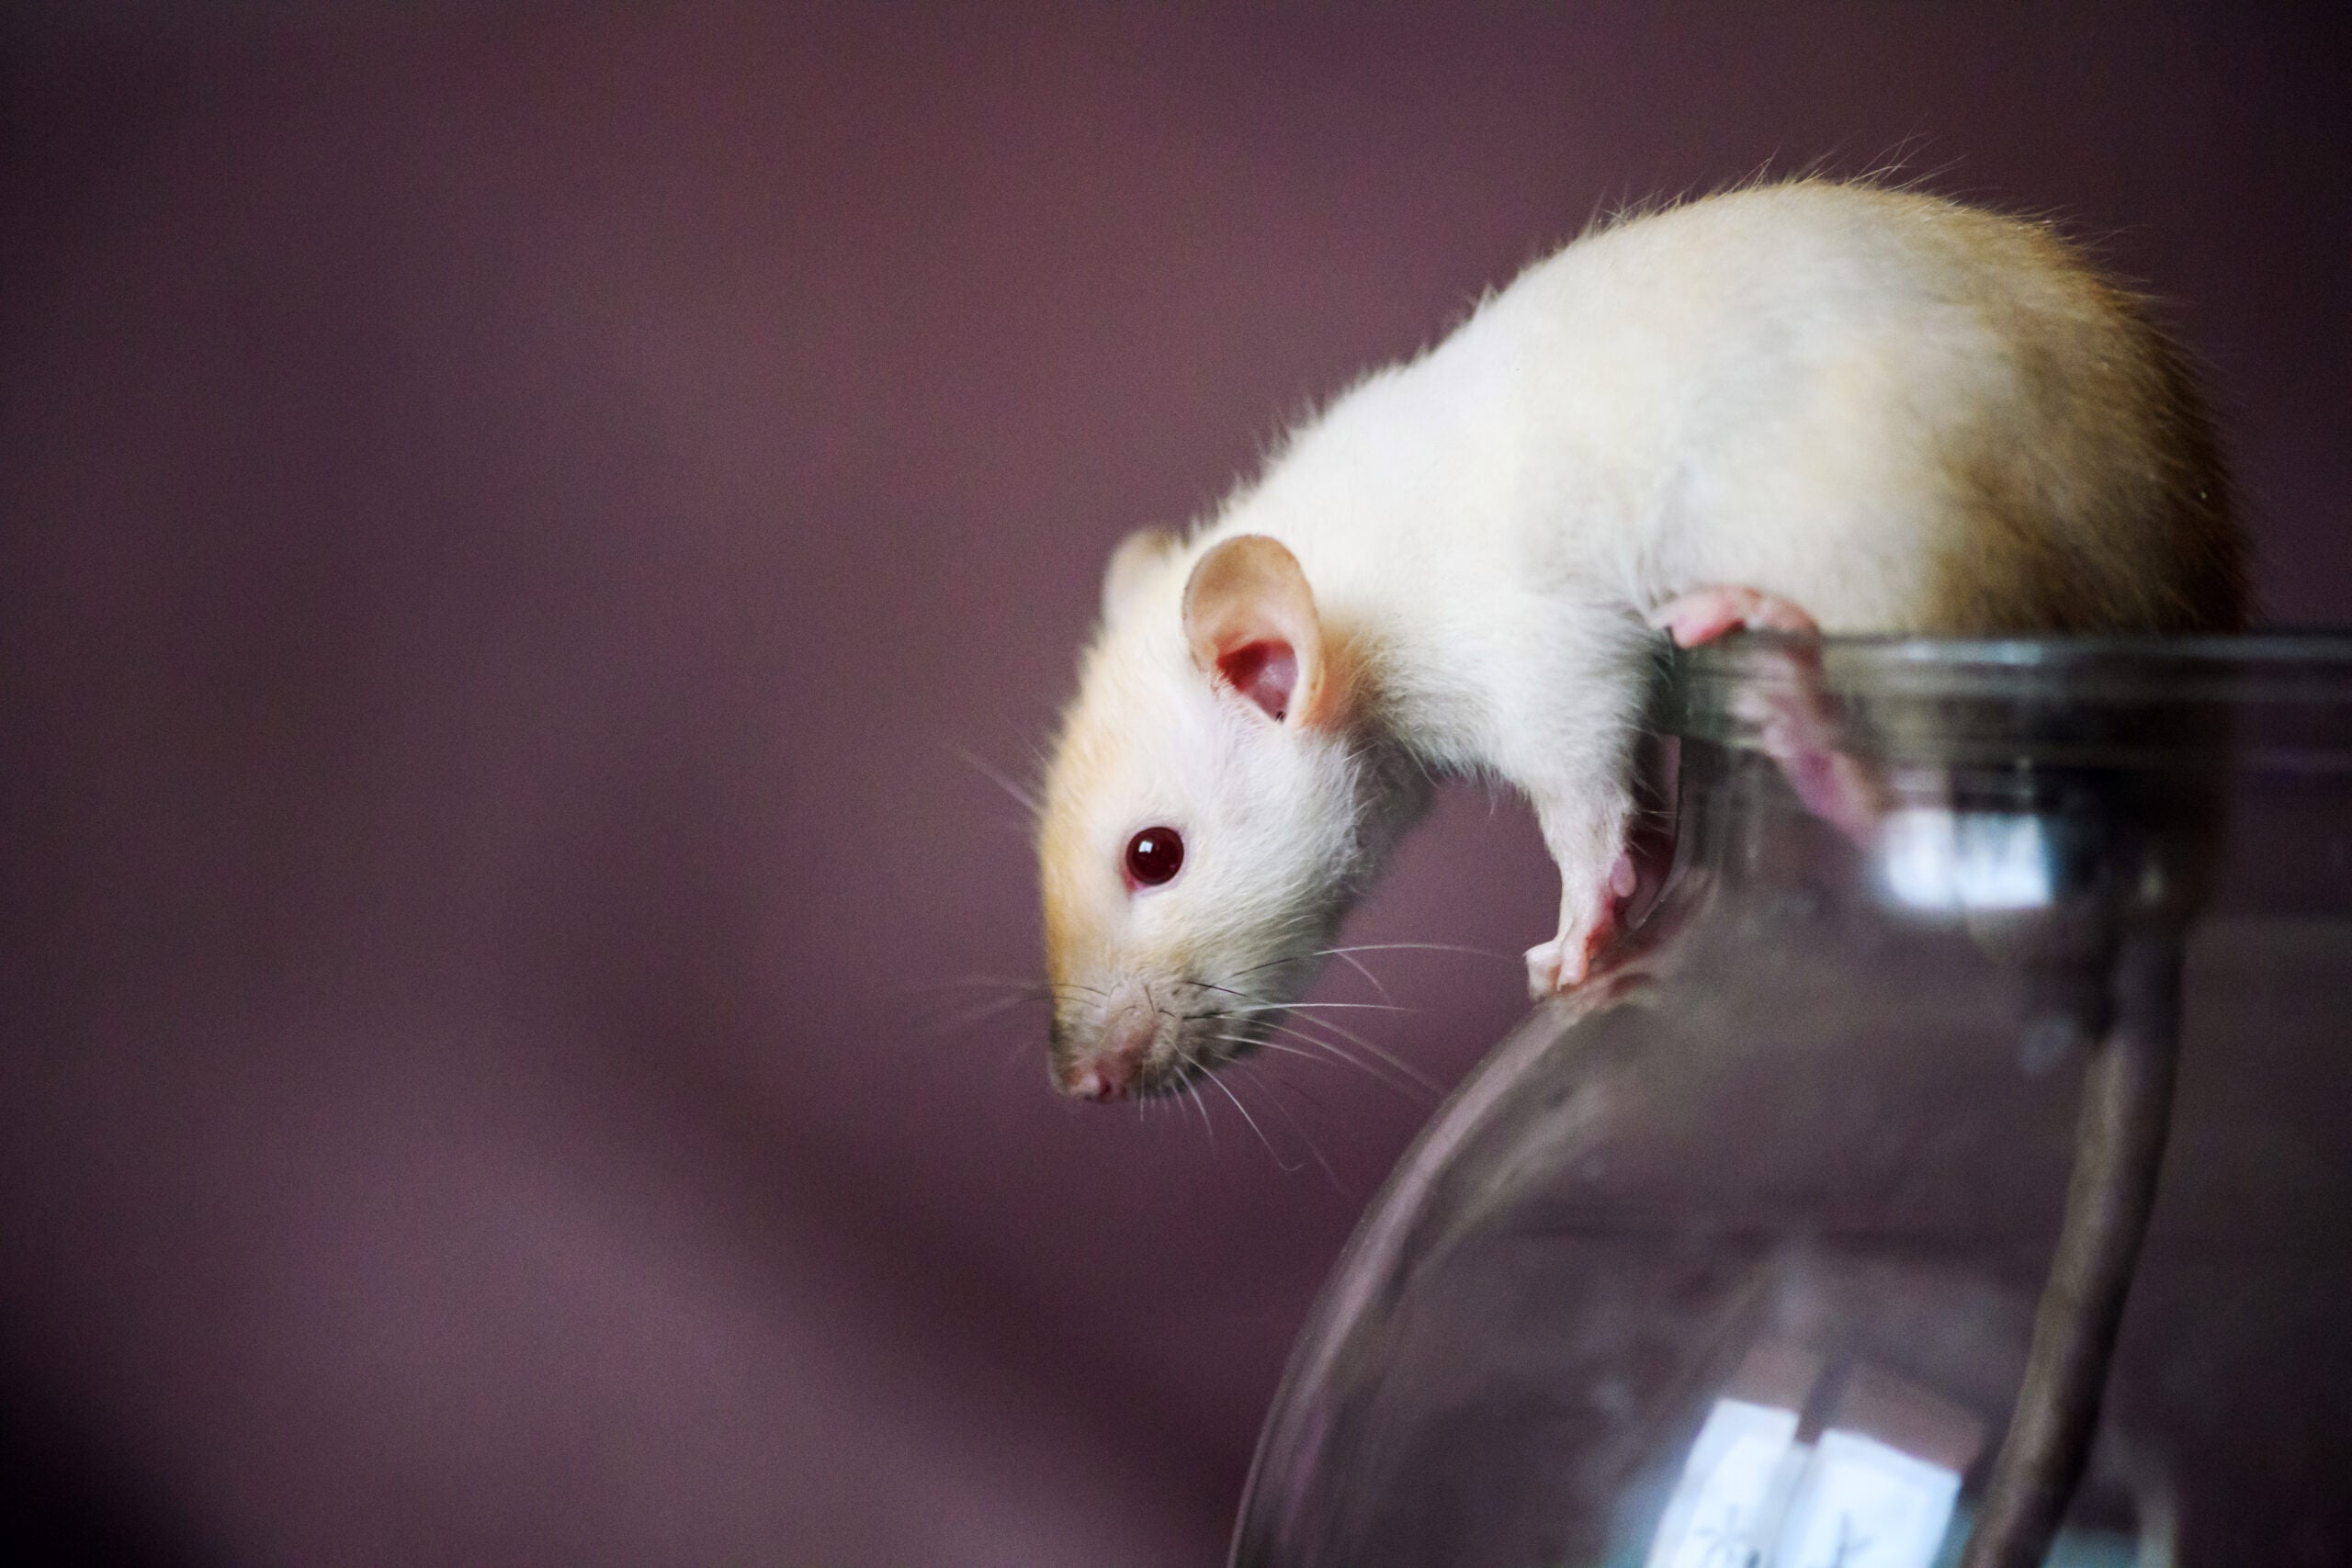 a white rat perched on a glass jar